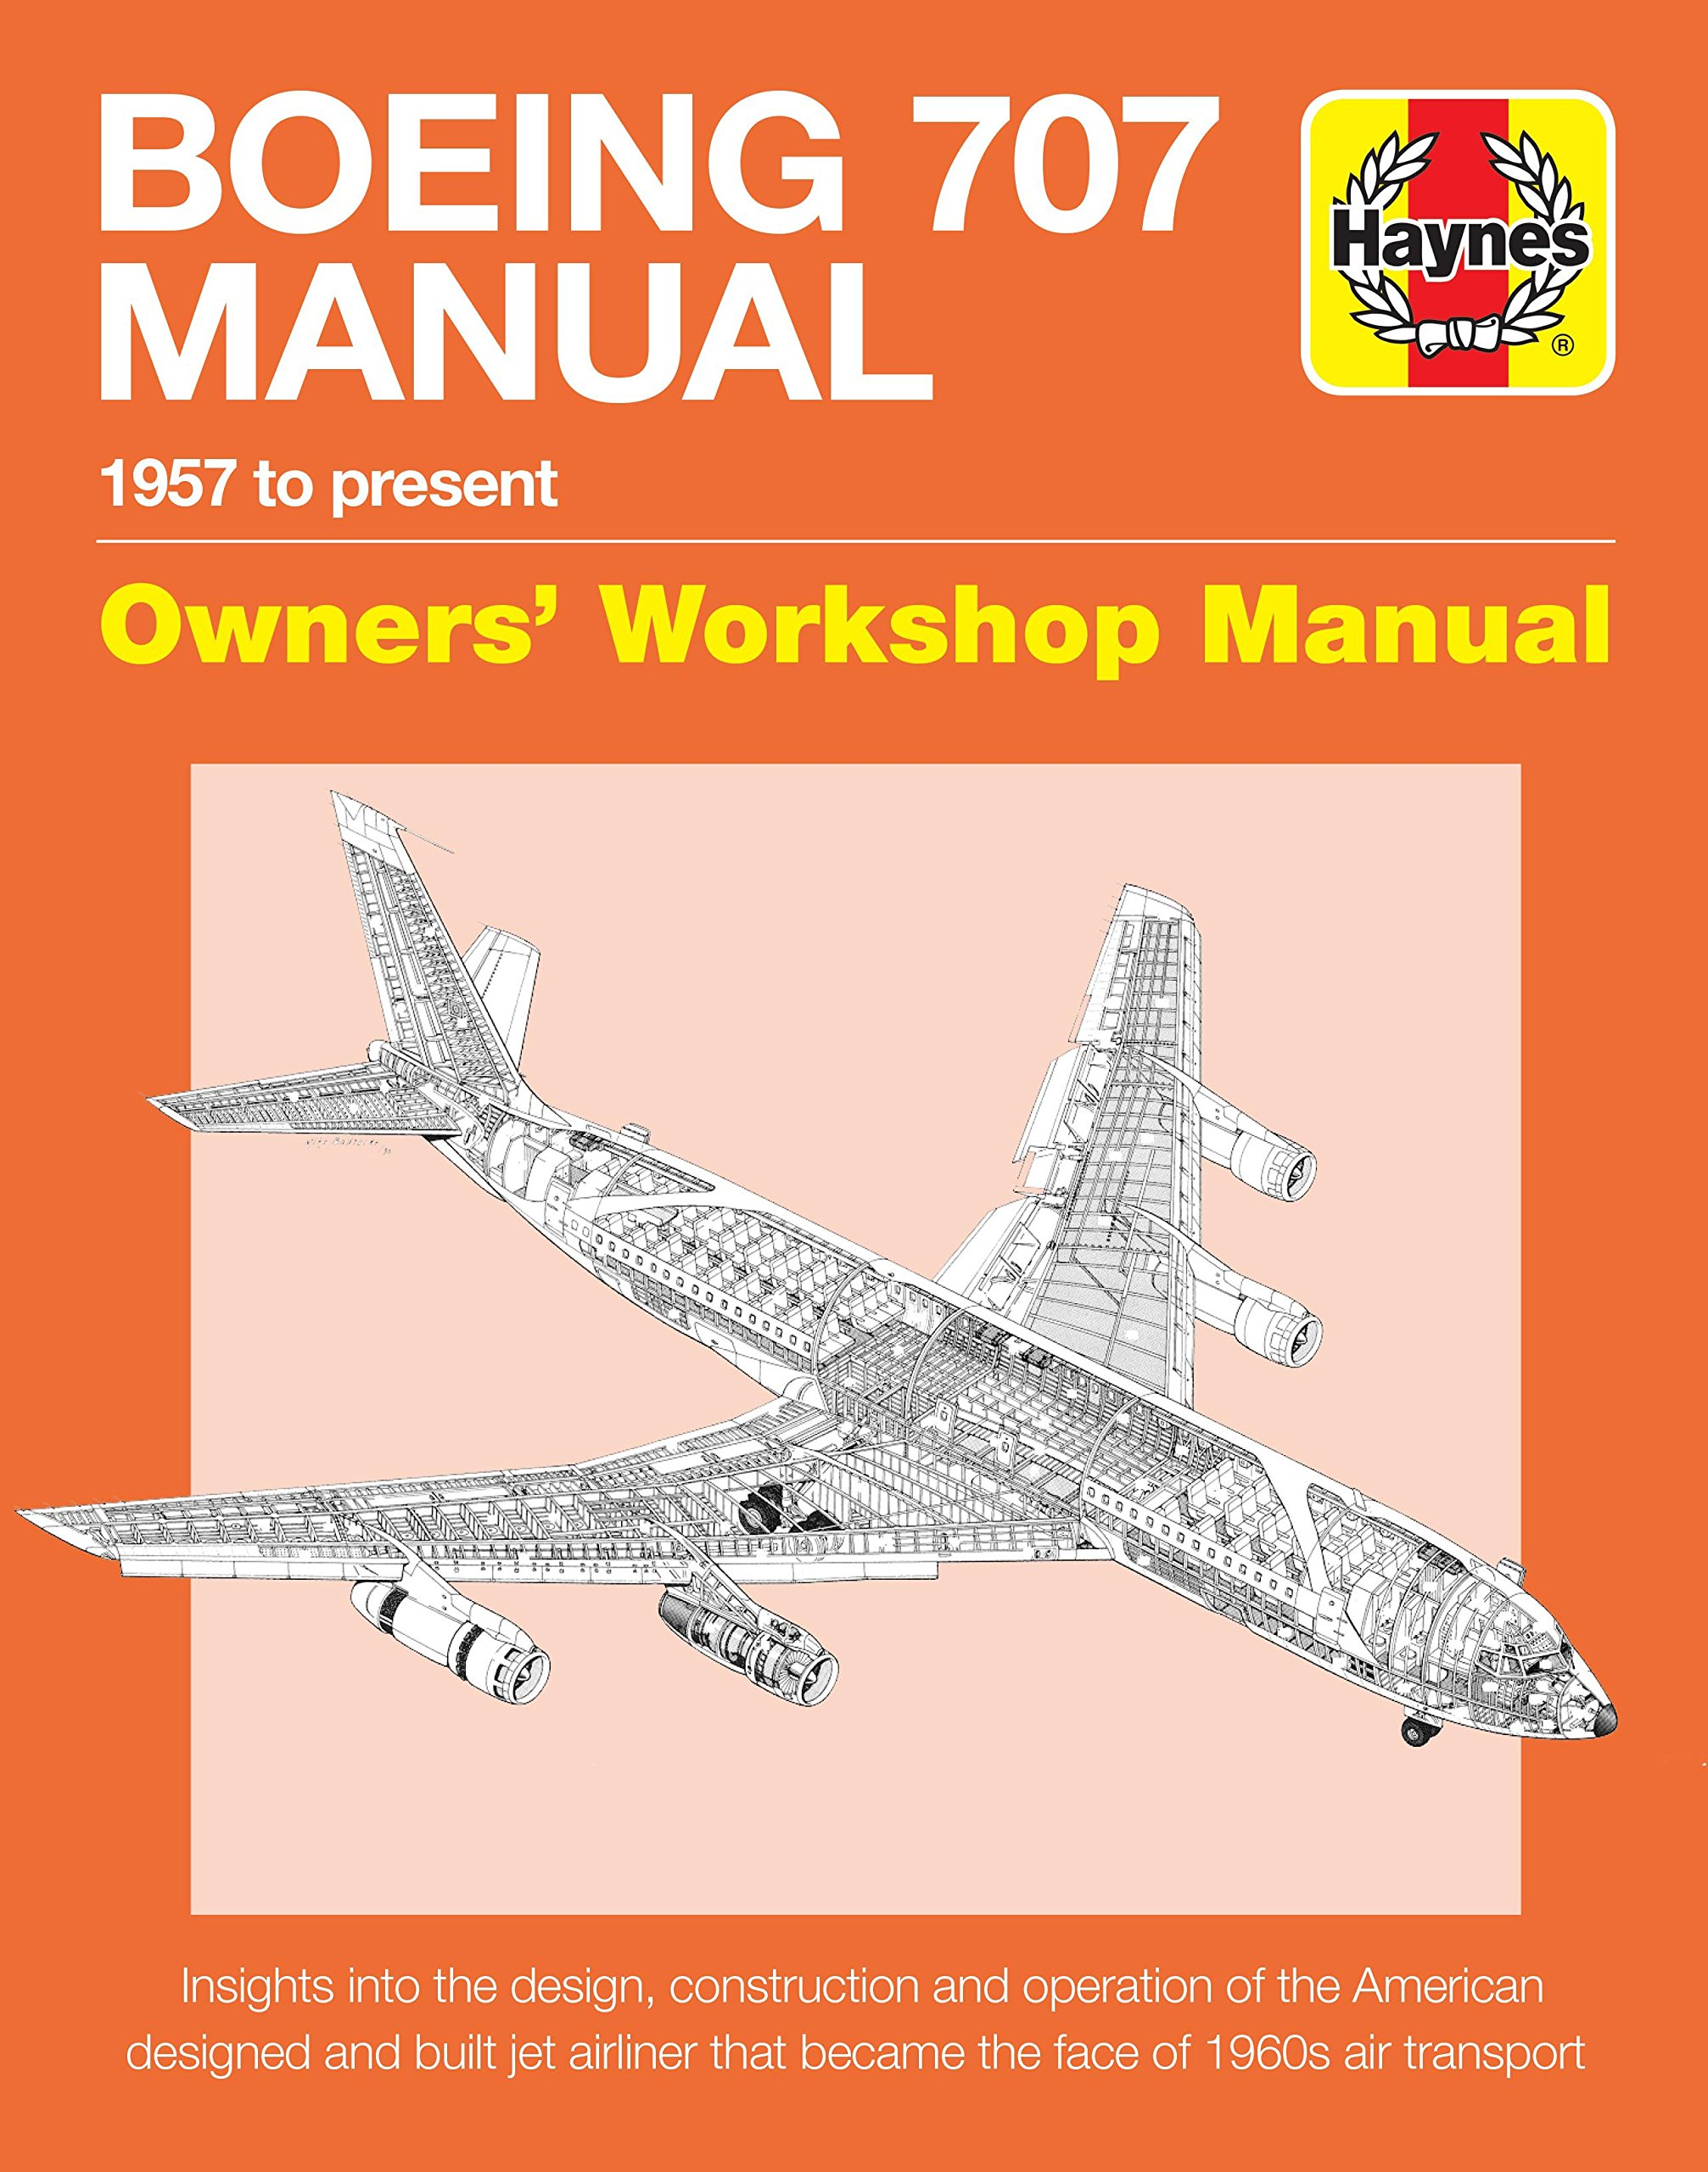 Boeing 707 Manual (Haynes Manuals): Charles Kennedy: 9781785211362:  Amazon.com: Books